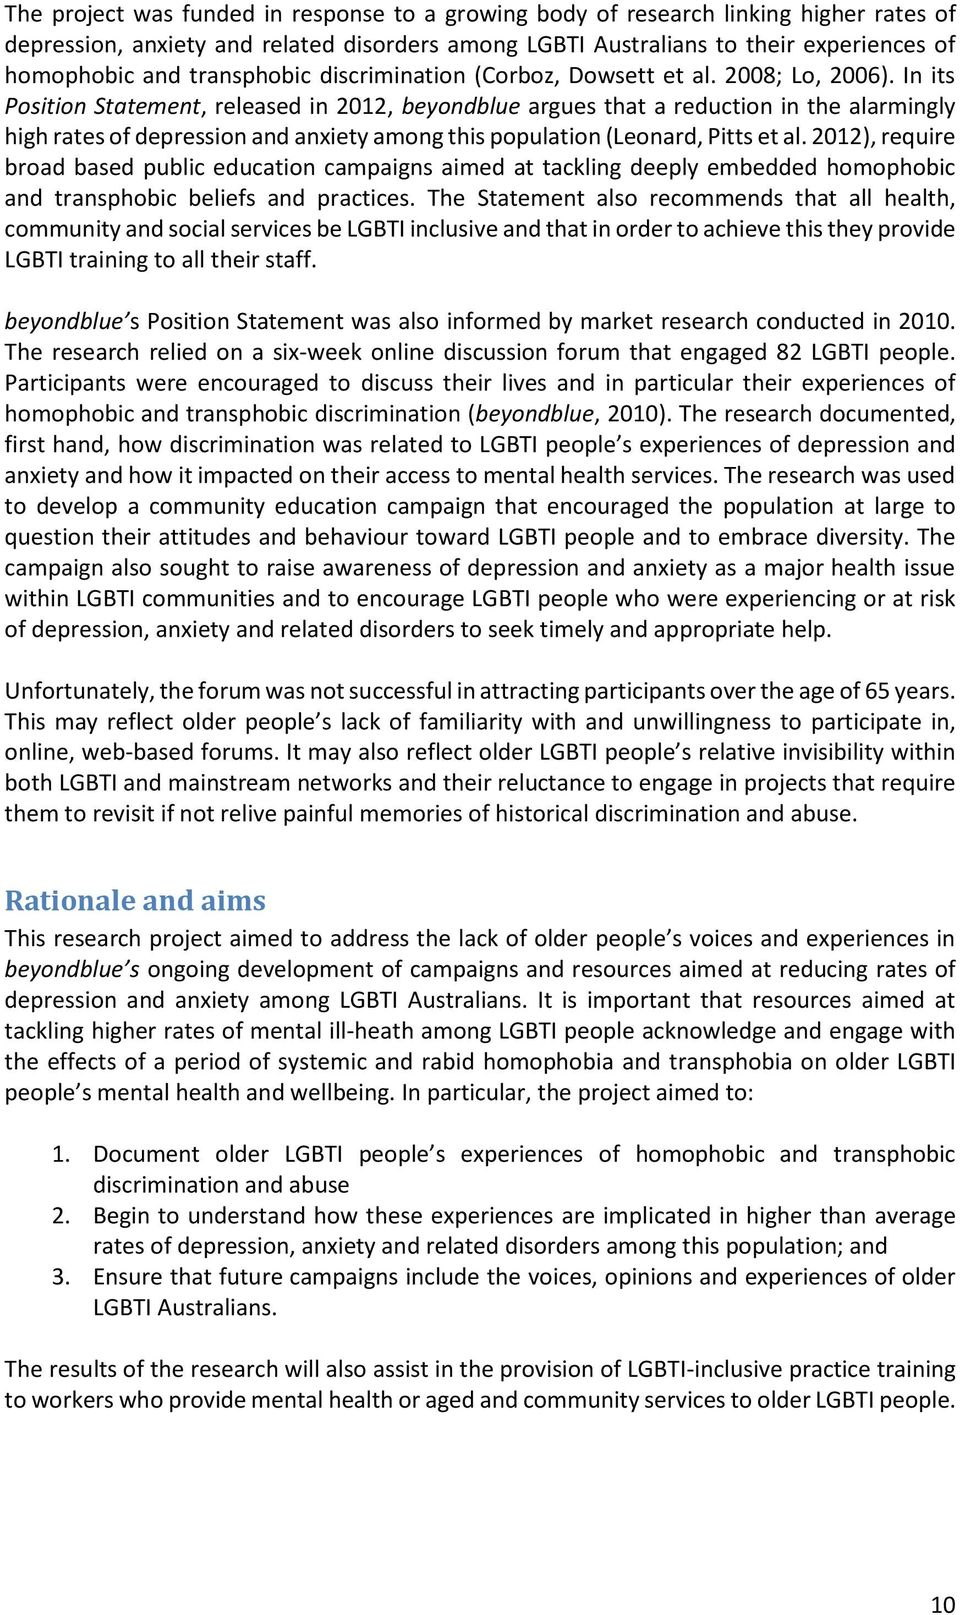 In its Position Statement, released in 2012, beyondblue argues that a reduction in the alarmingly high rates of depression and anxiety among this population (Leonard, Pitts et al.